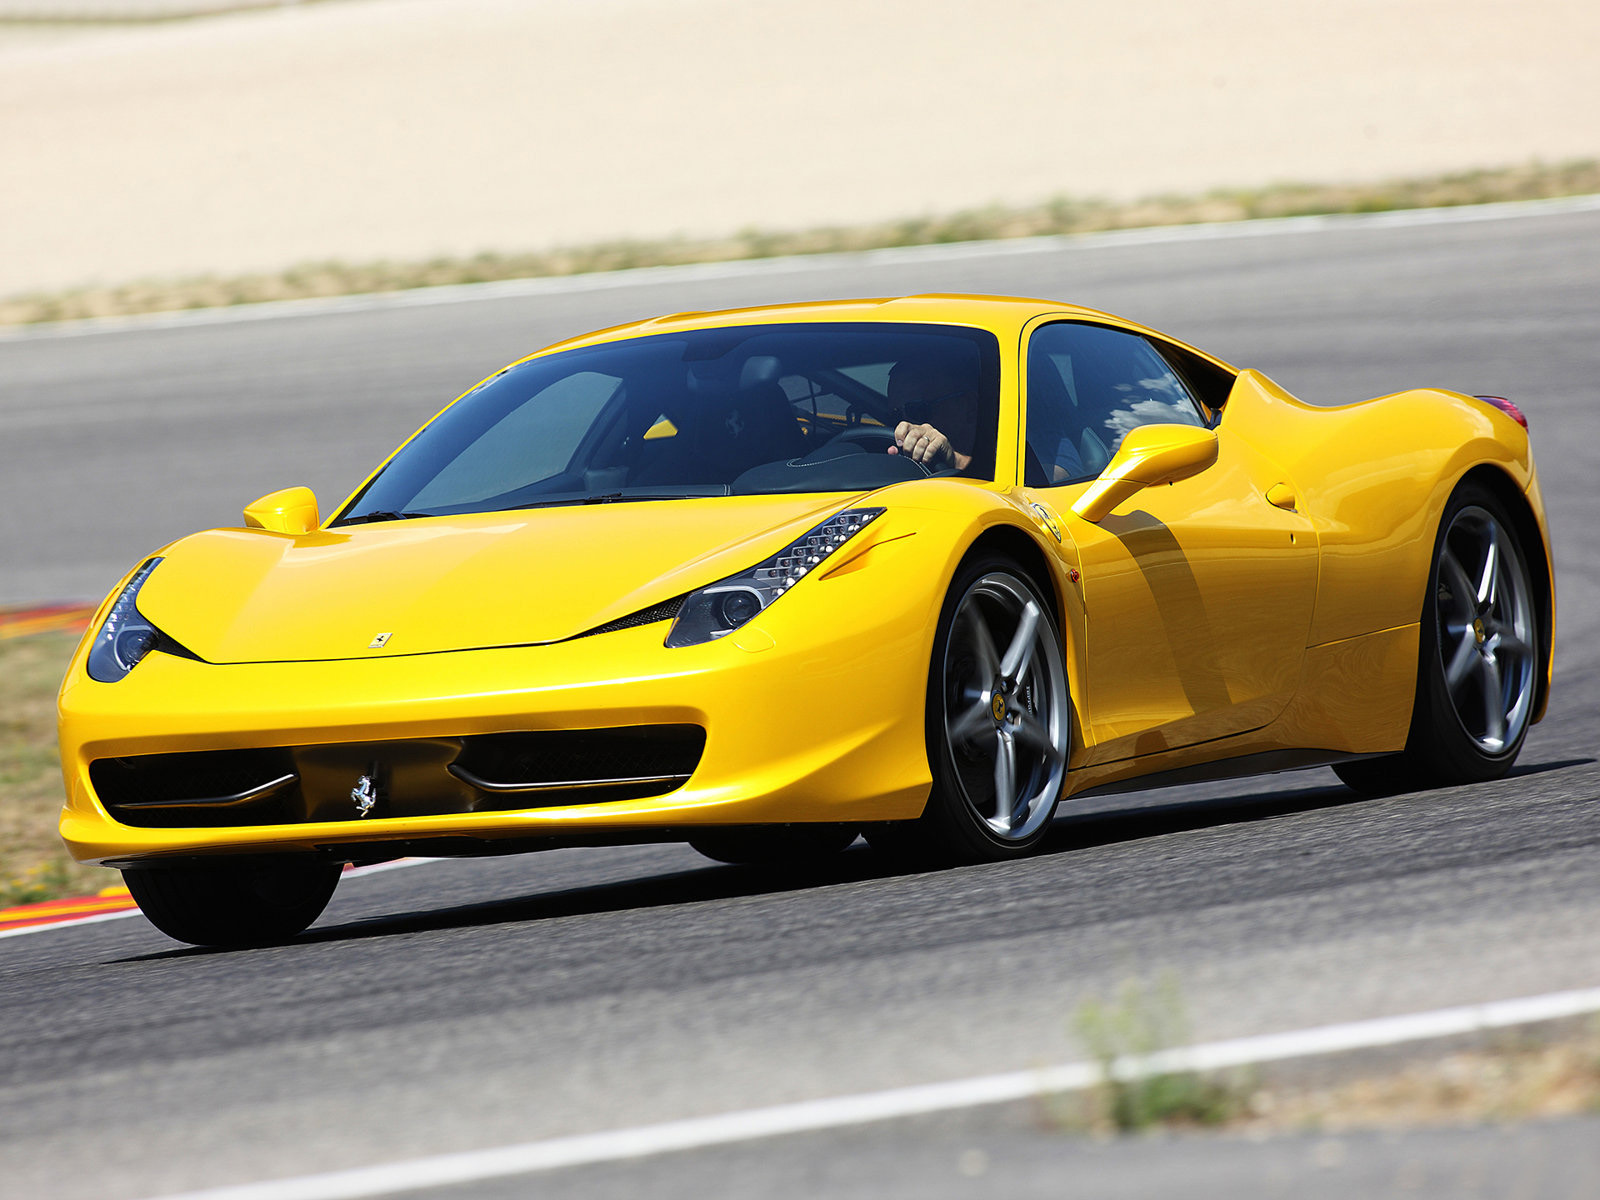 ... Yellow Ferrari Wallpaper 08 ...